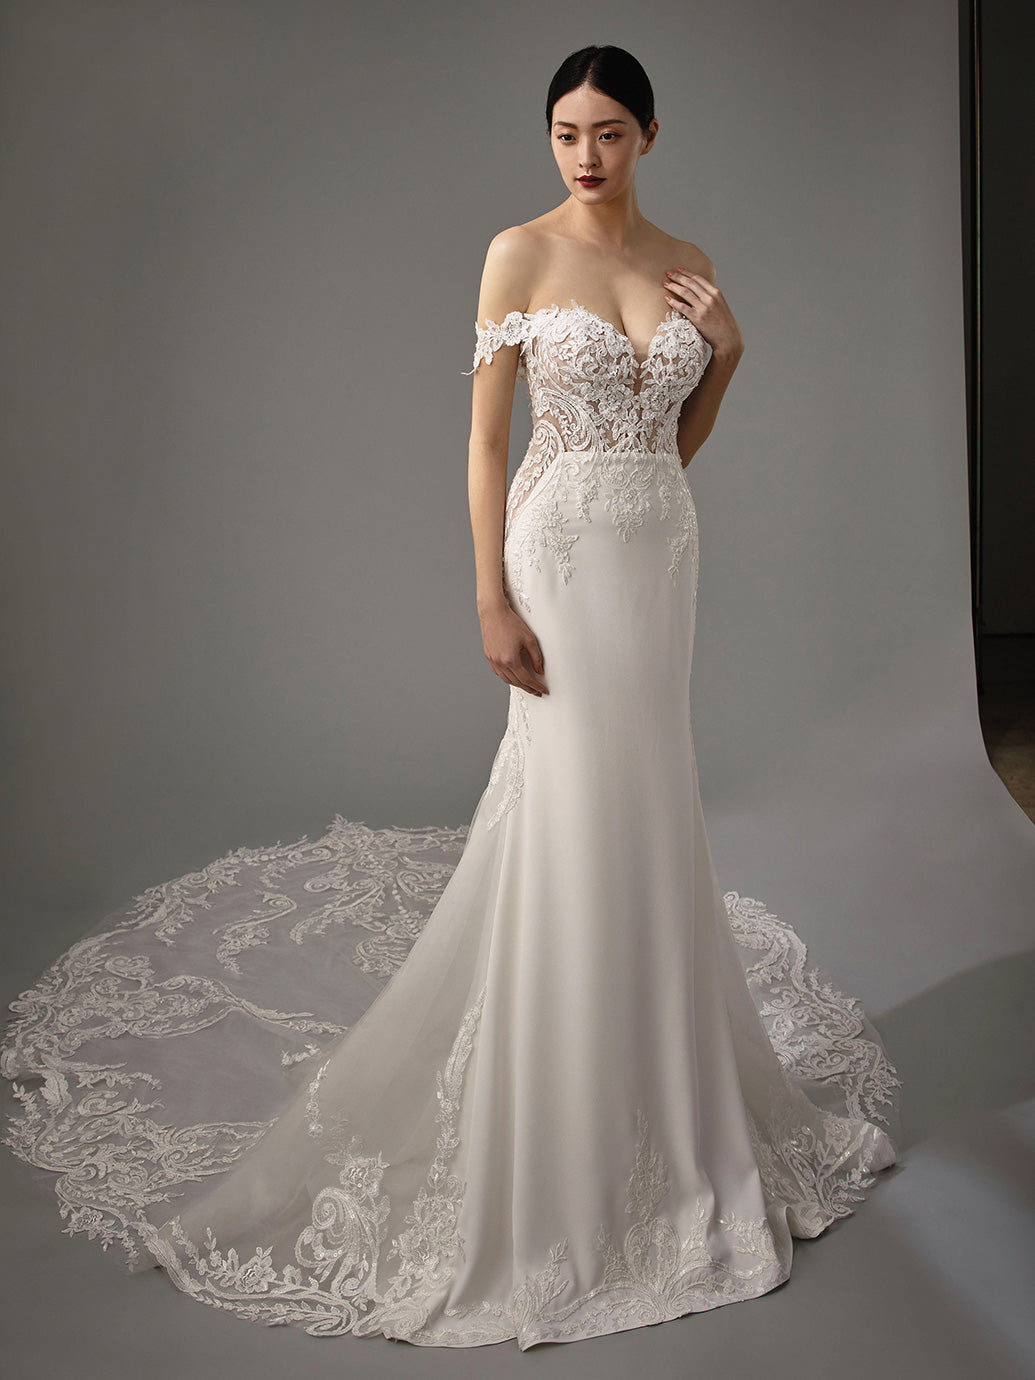 Martha - New, Gown, Blue by Enzoani - Eternal Bridal